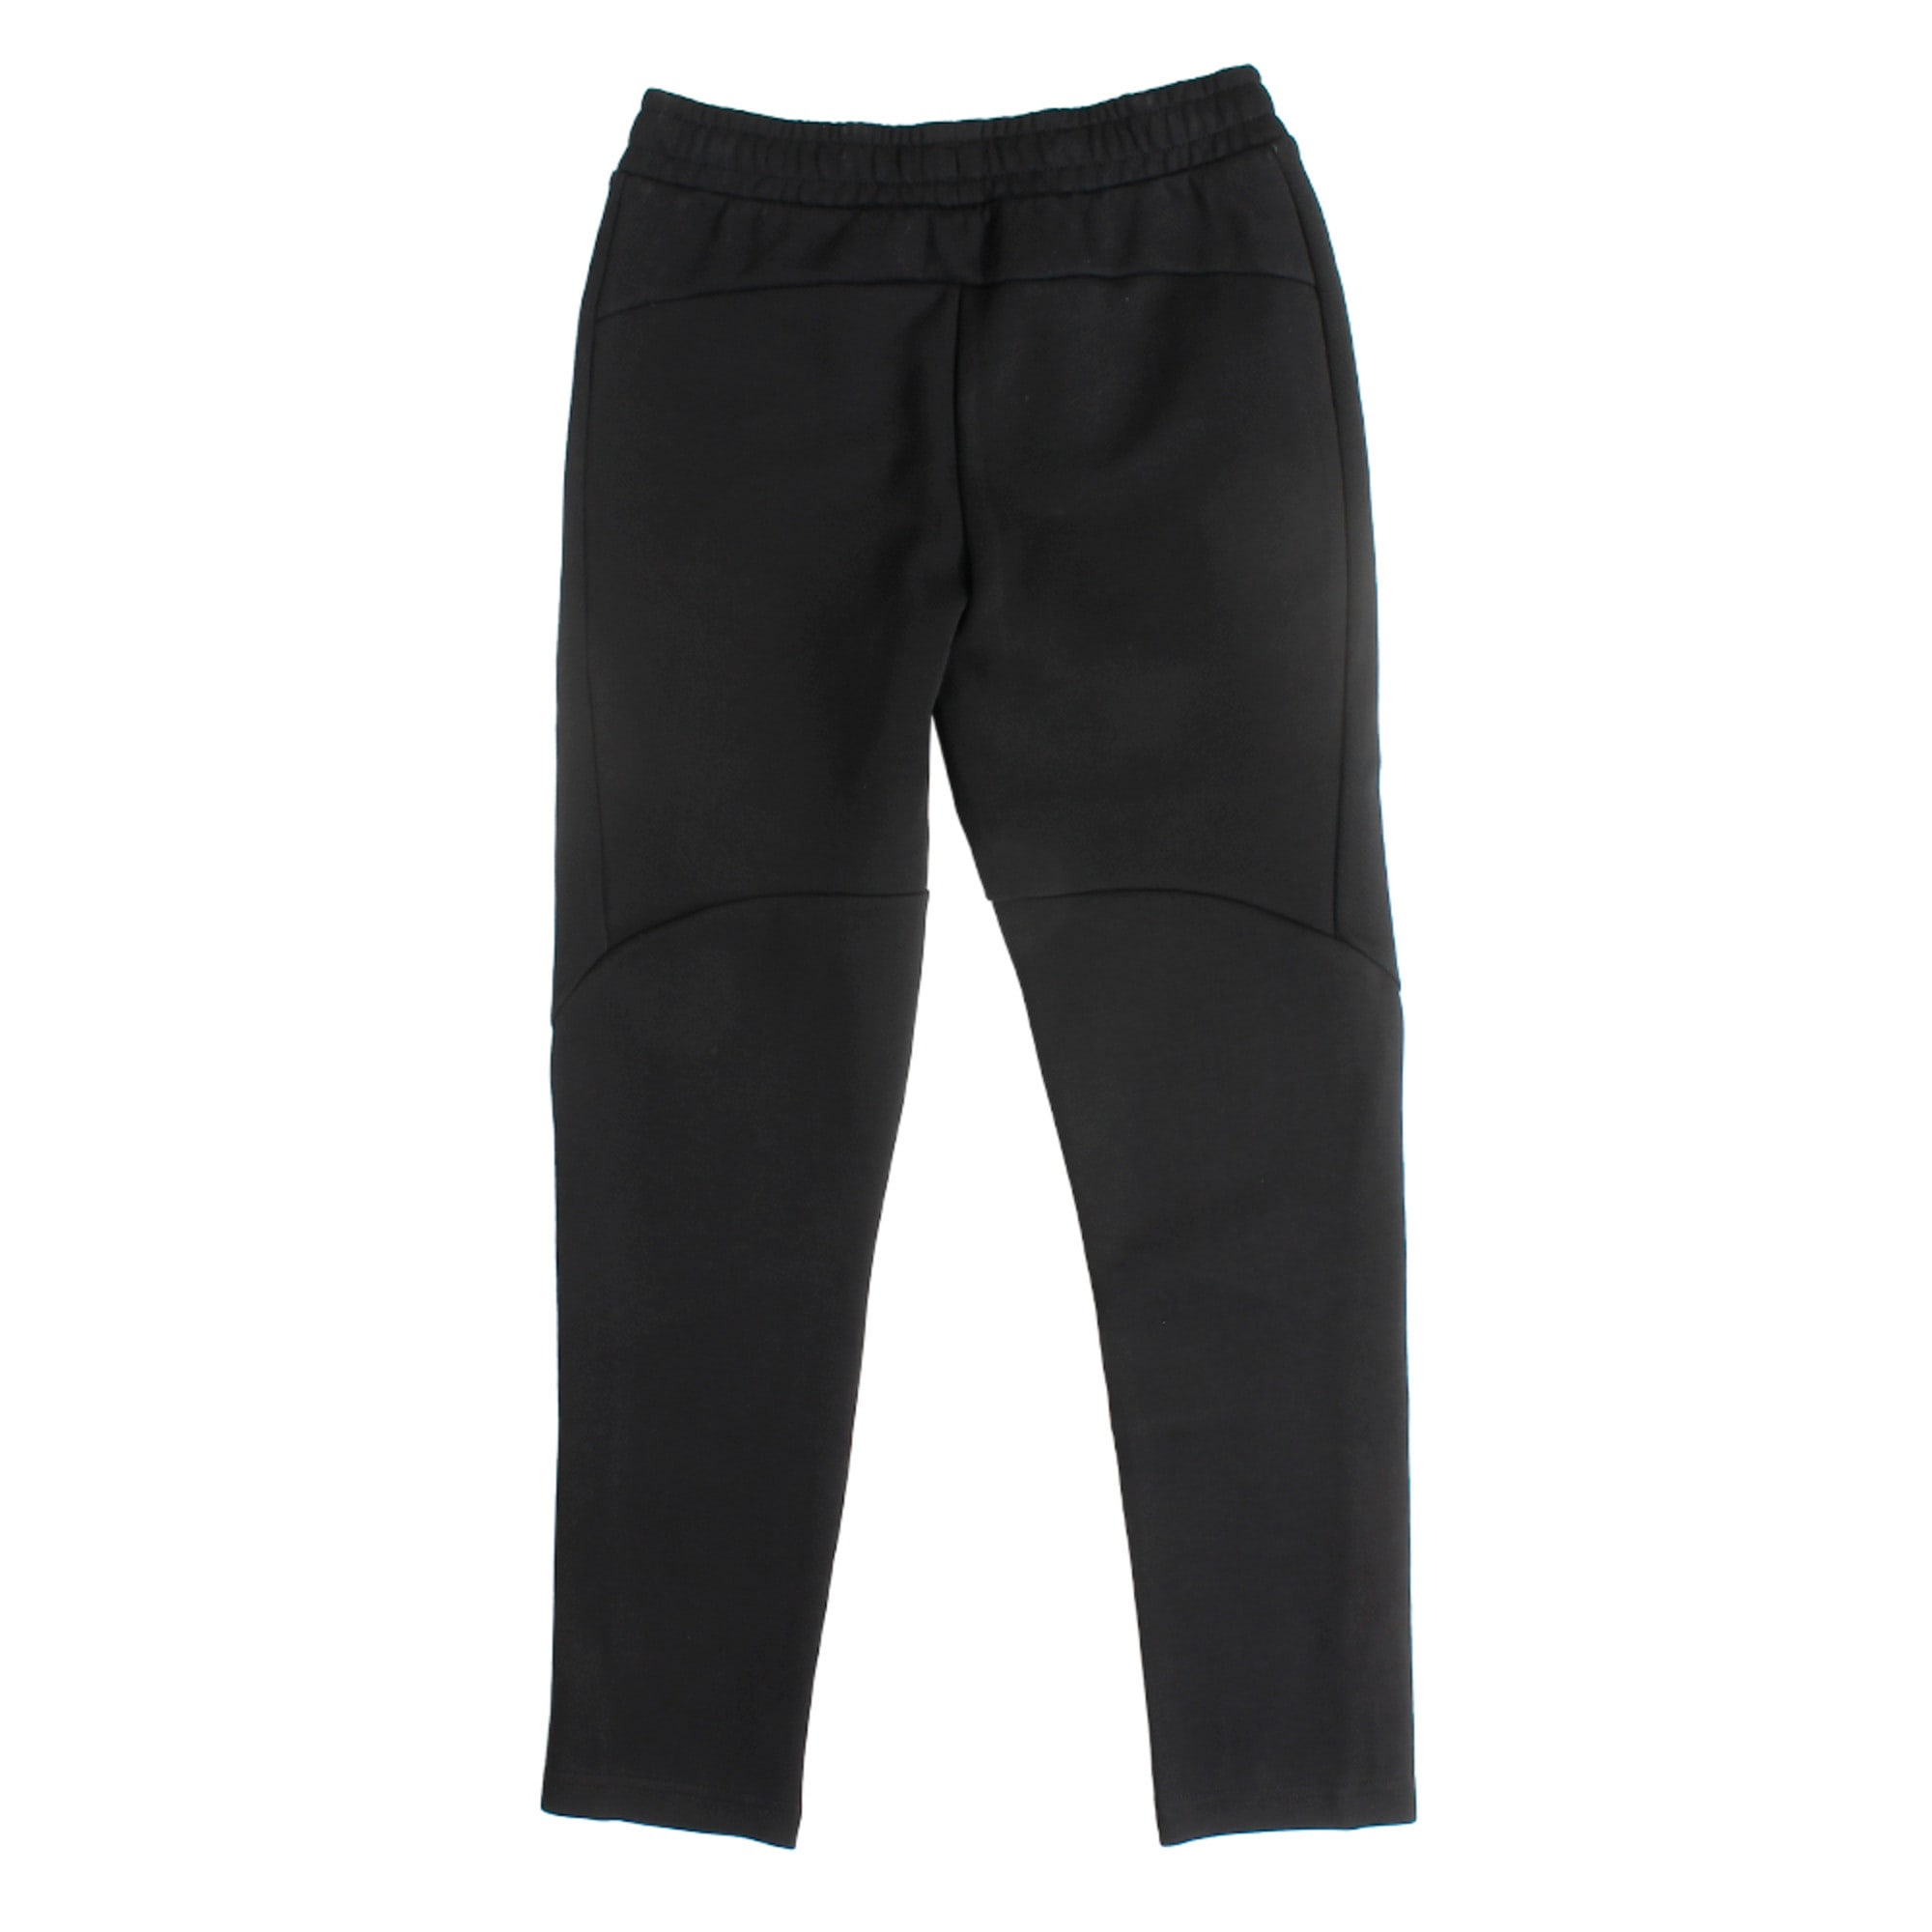 Thumbnail 1 of Evostripe Move Boys' Pants, Cotton Black, medium-IND